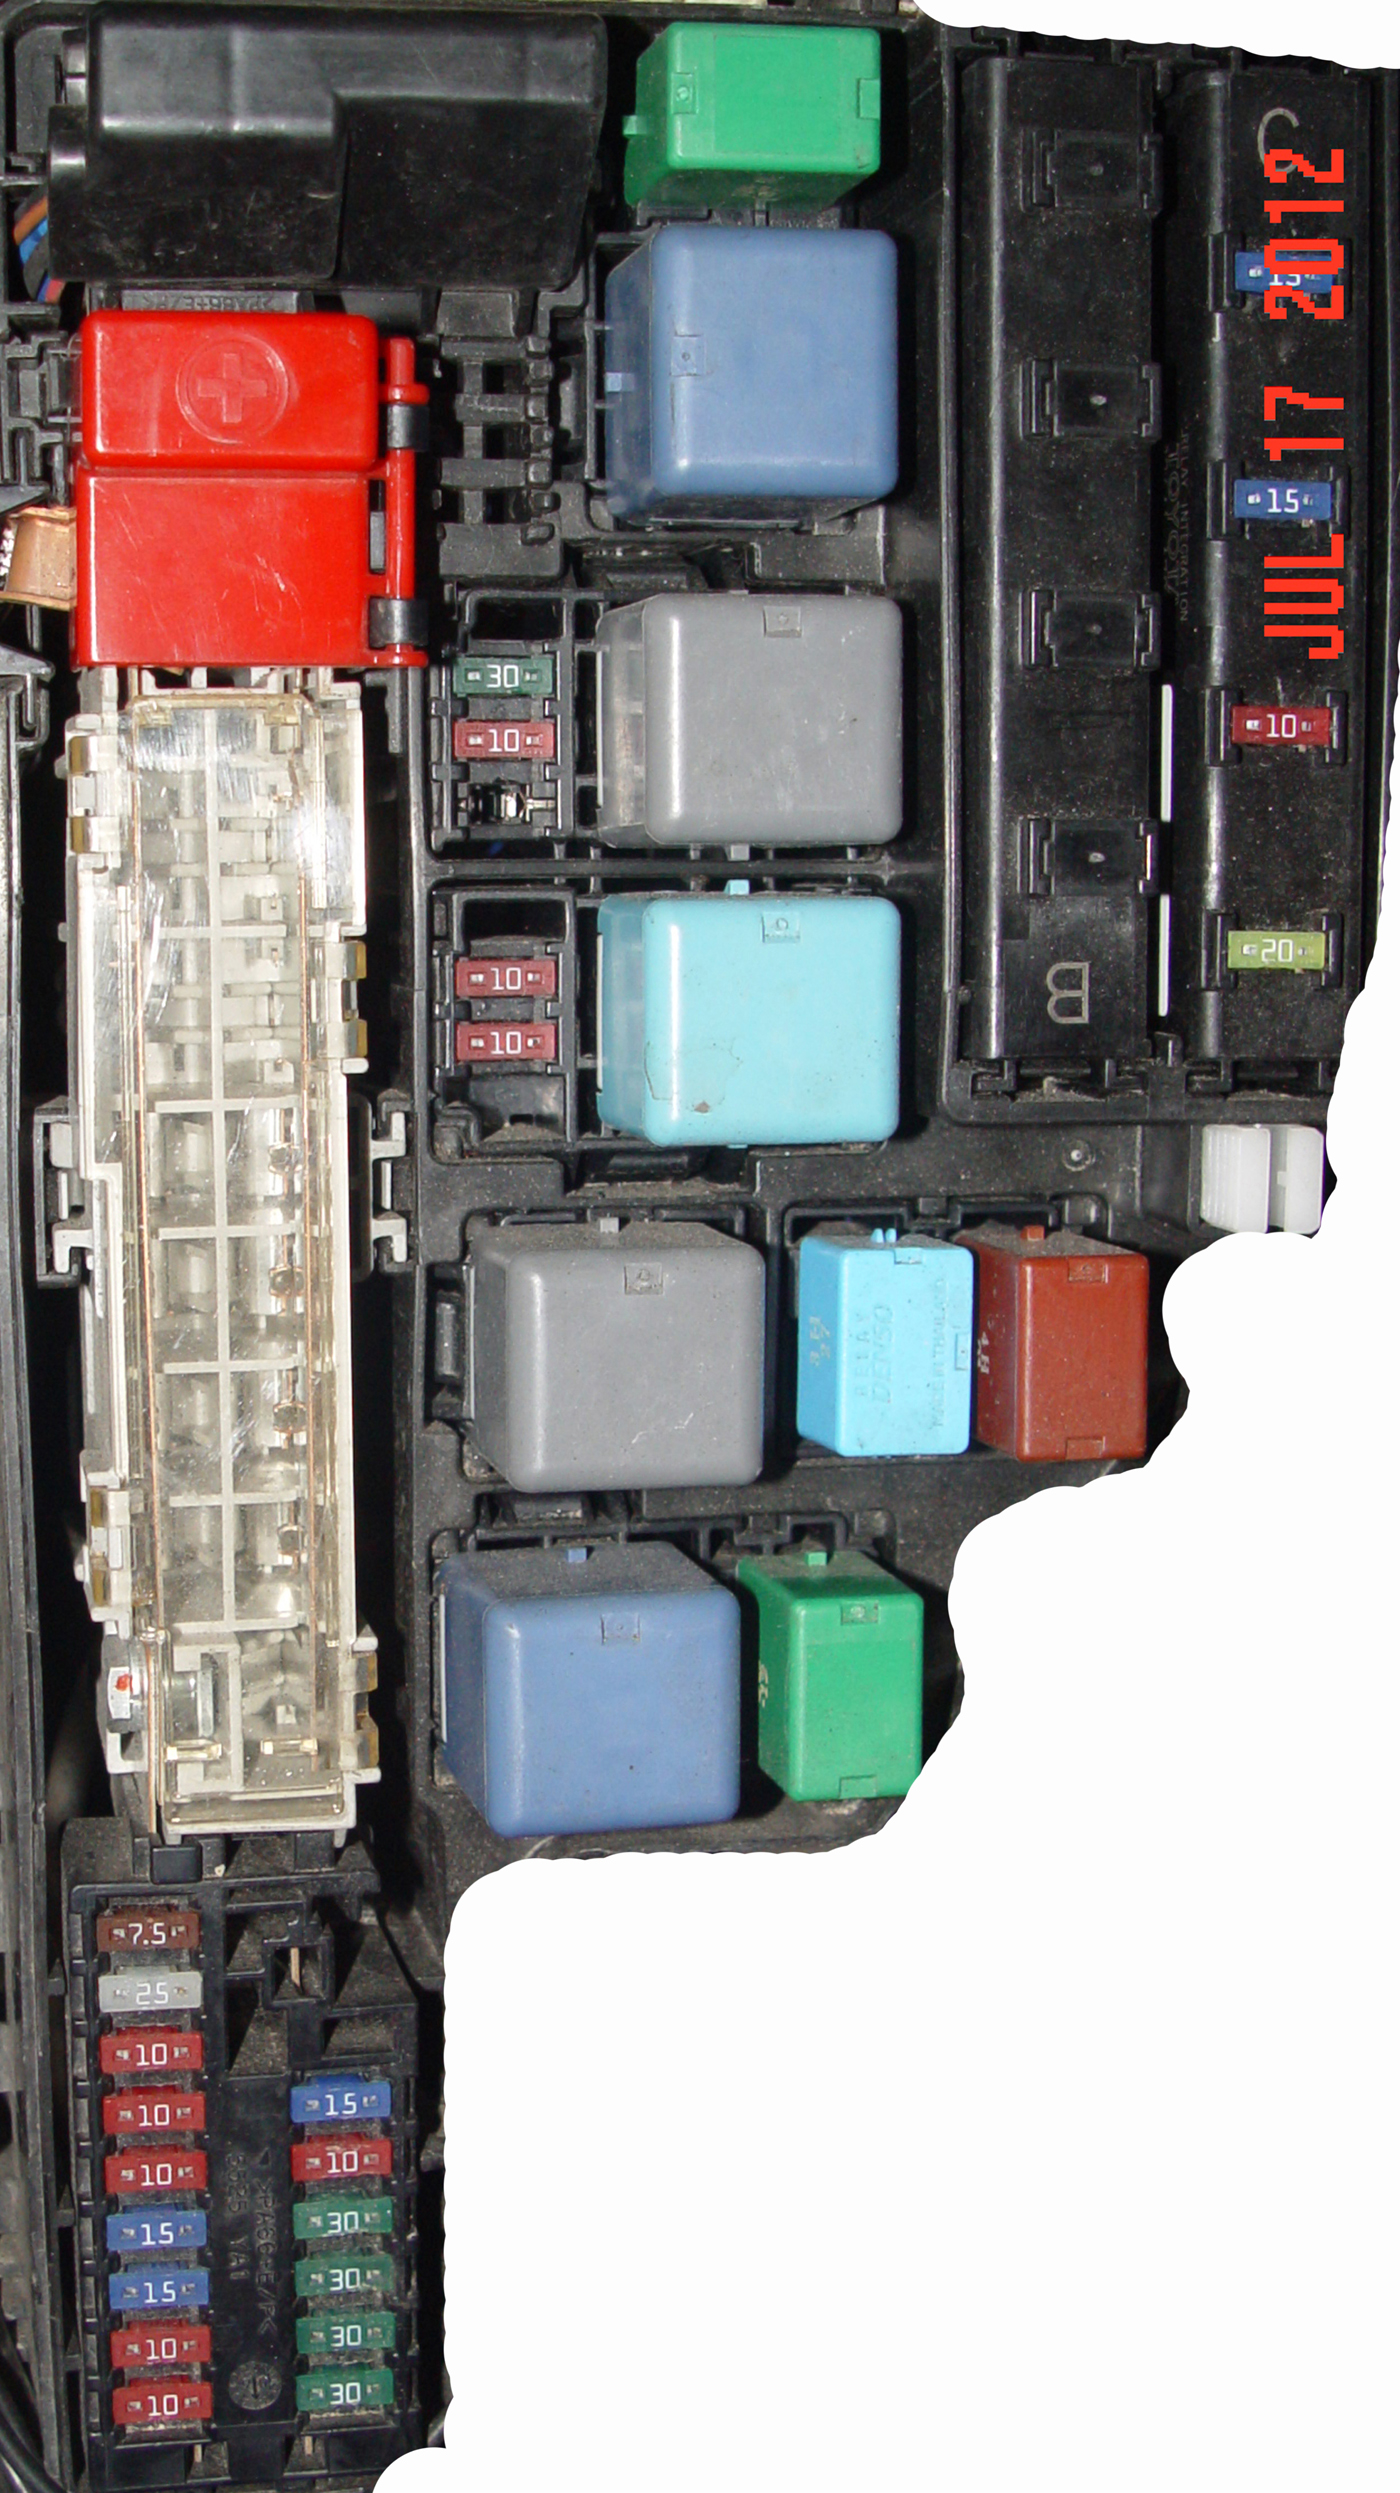 2004 toyota prius fuse box diagram iirGtIL 2008 toyota prius fuse box 2007 toyota prius fuse box \u2022 free access to 2010 prius fuse box at bayanpartner.co